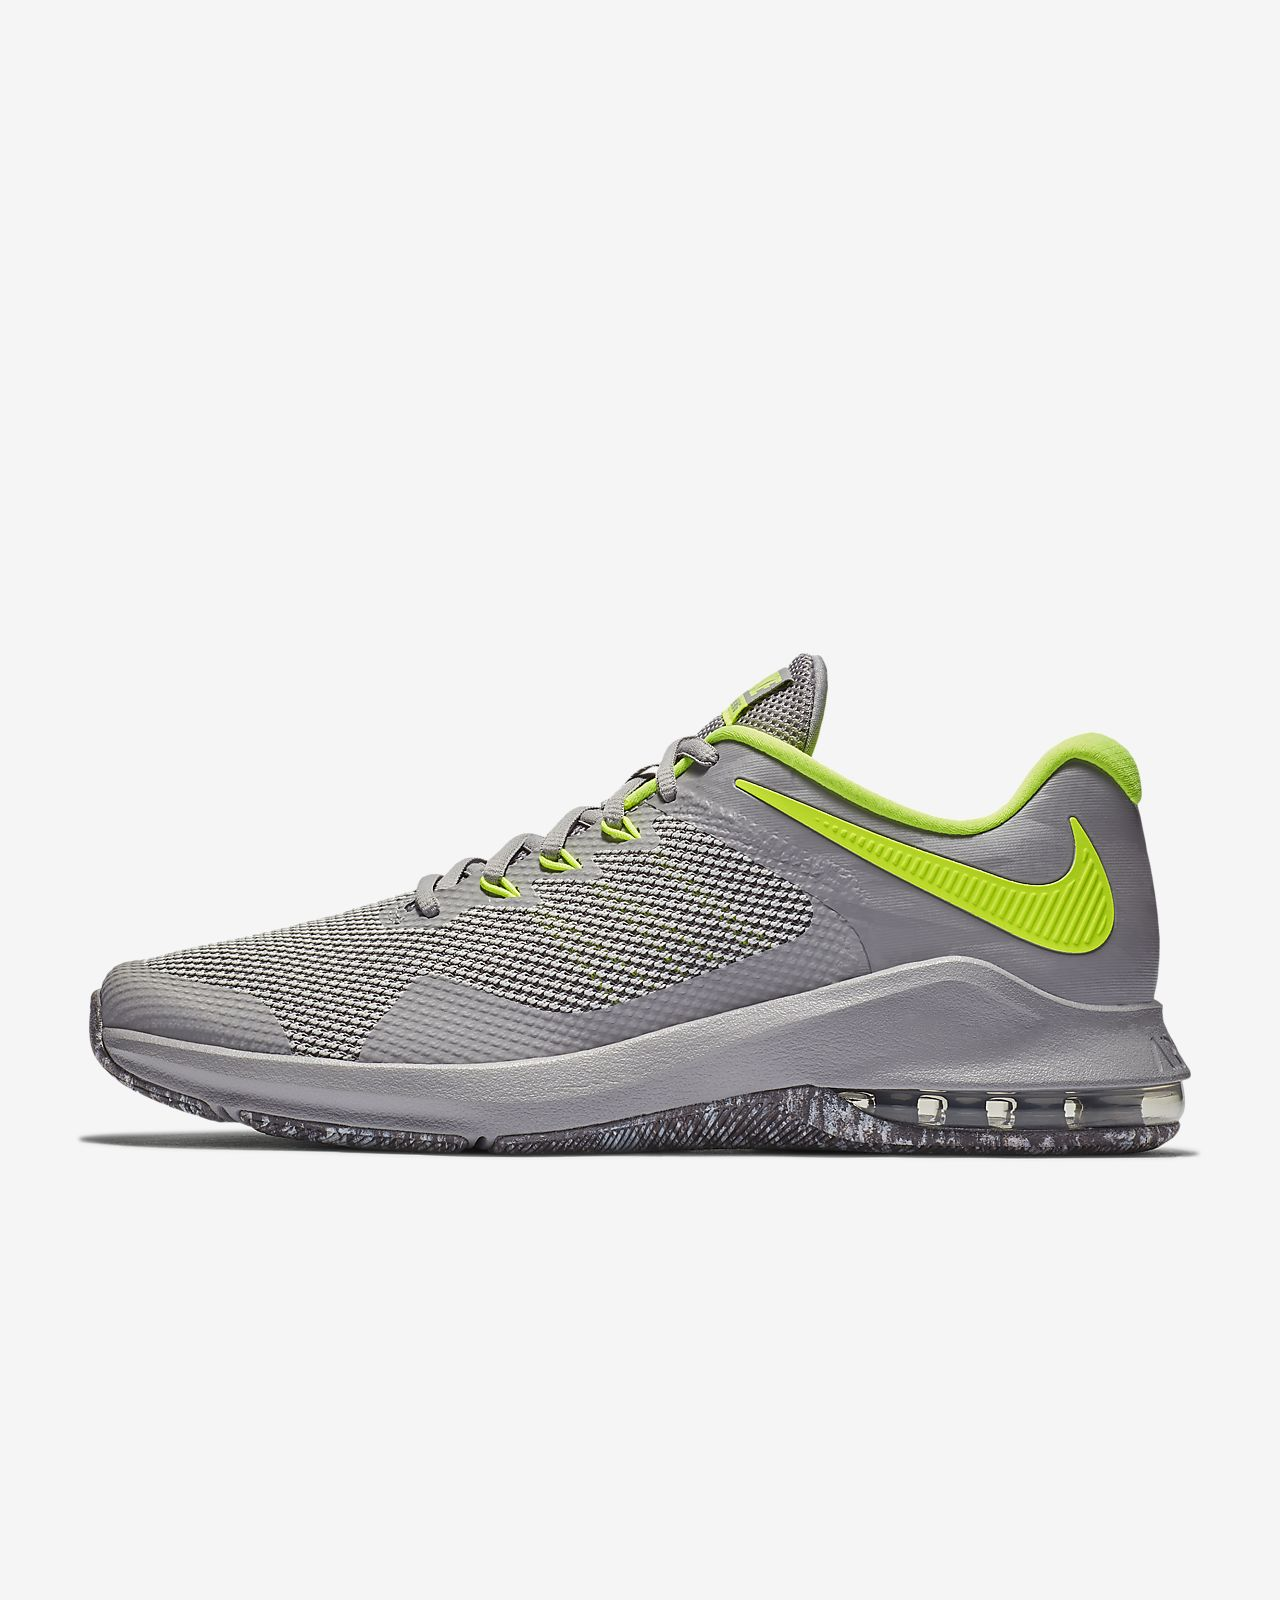 NIKE Men's Air Max Alpha Cross-Training Shoes clearance sale online discount tumblr GGNbJ